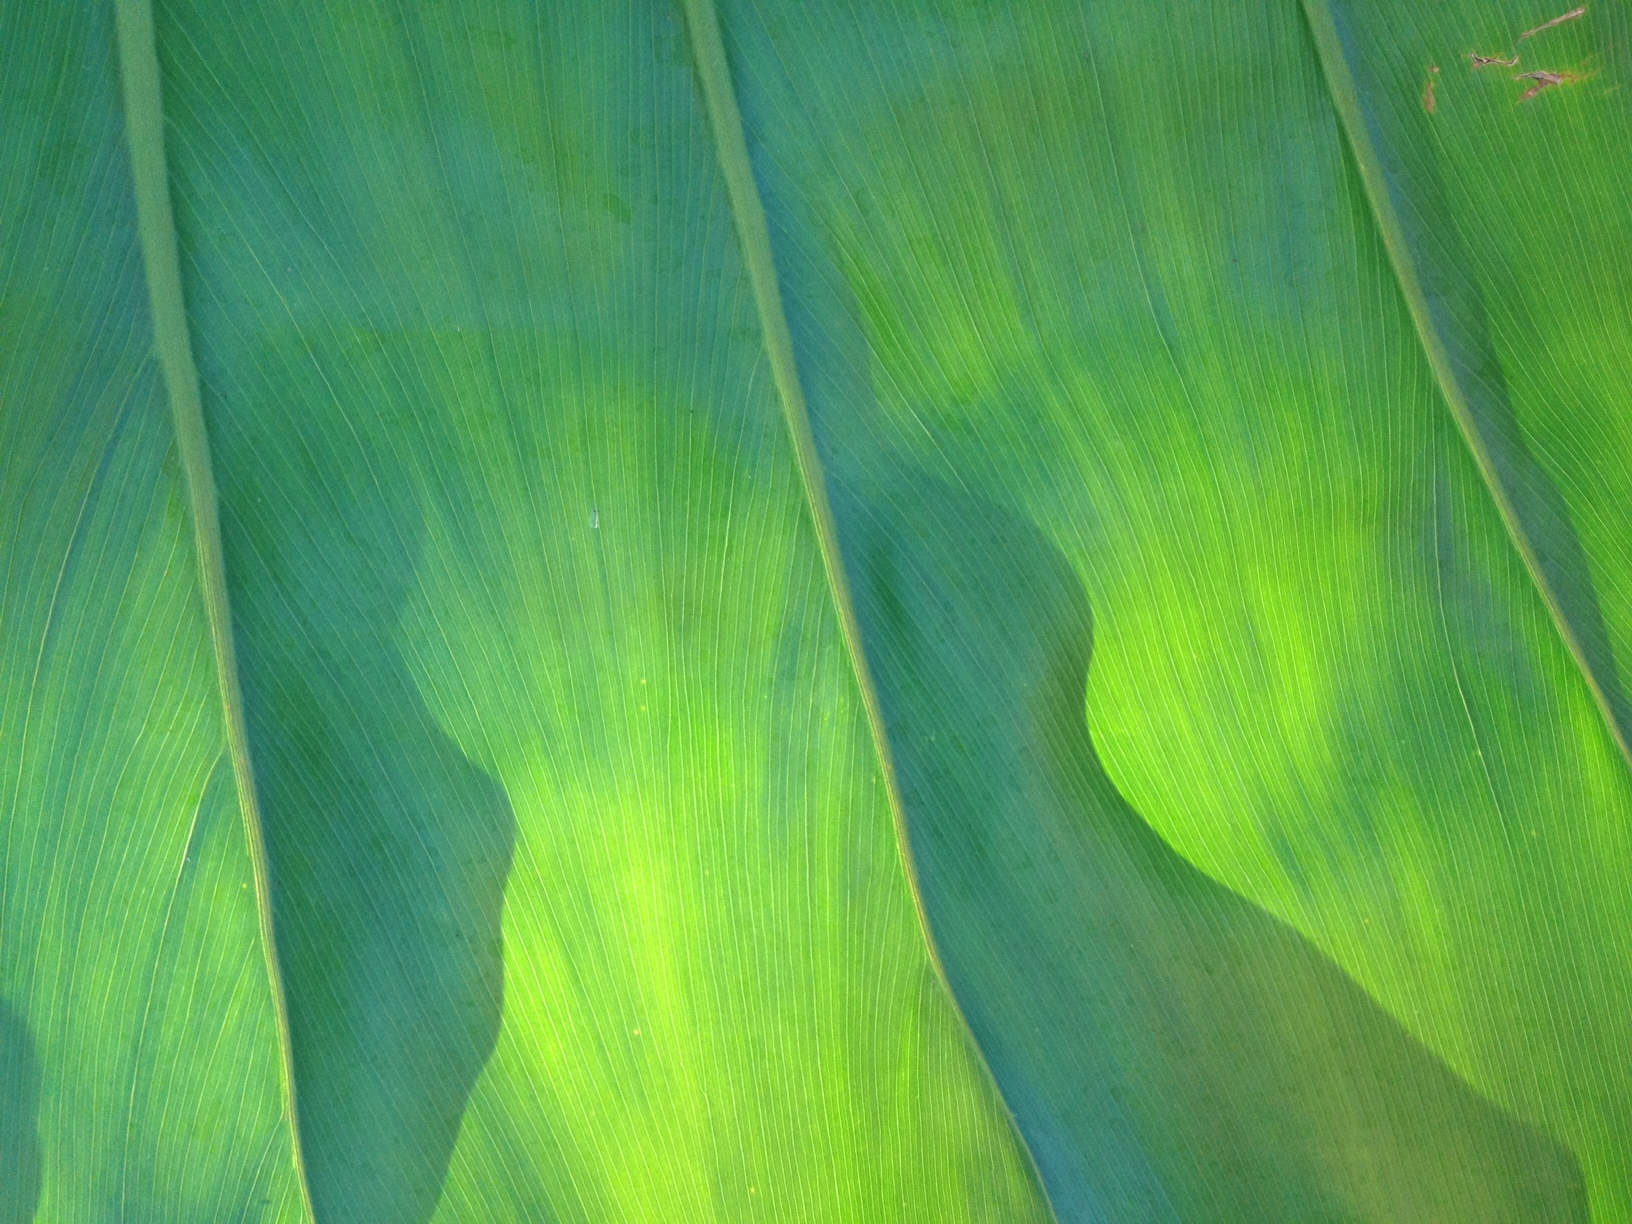 leaf at the university of miami by marjory mejia. sacred flow